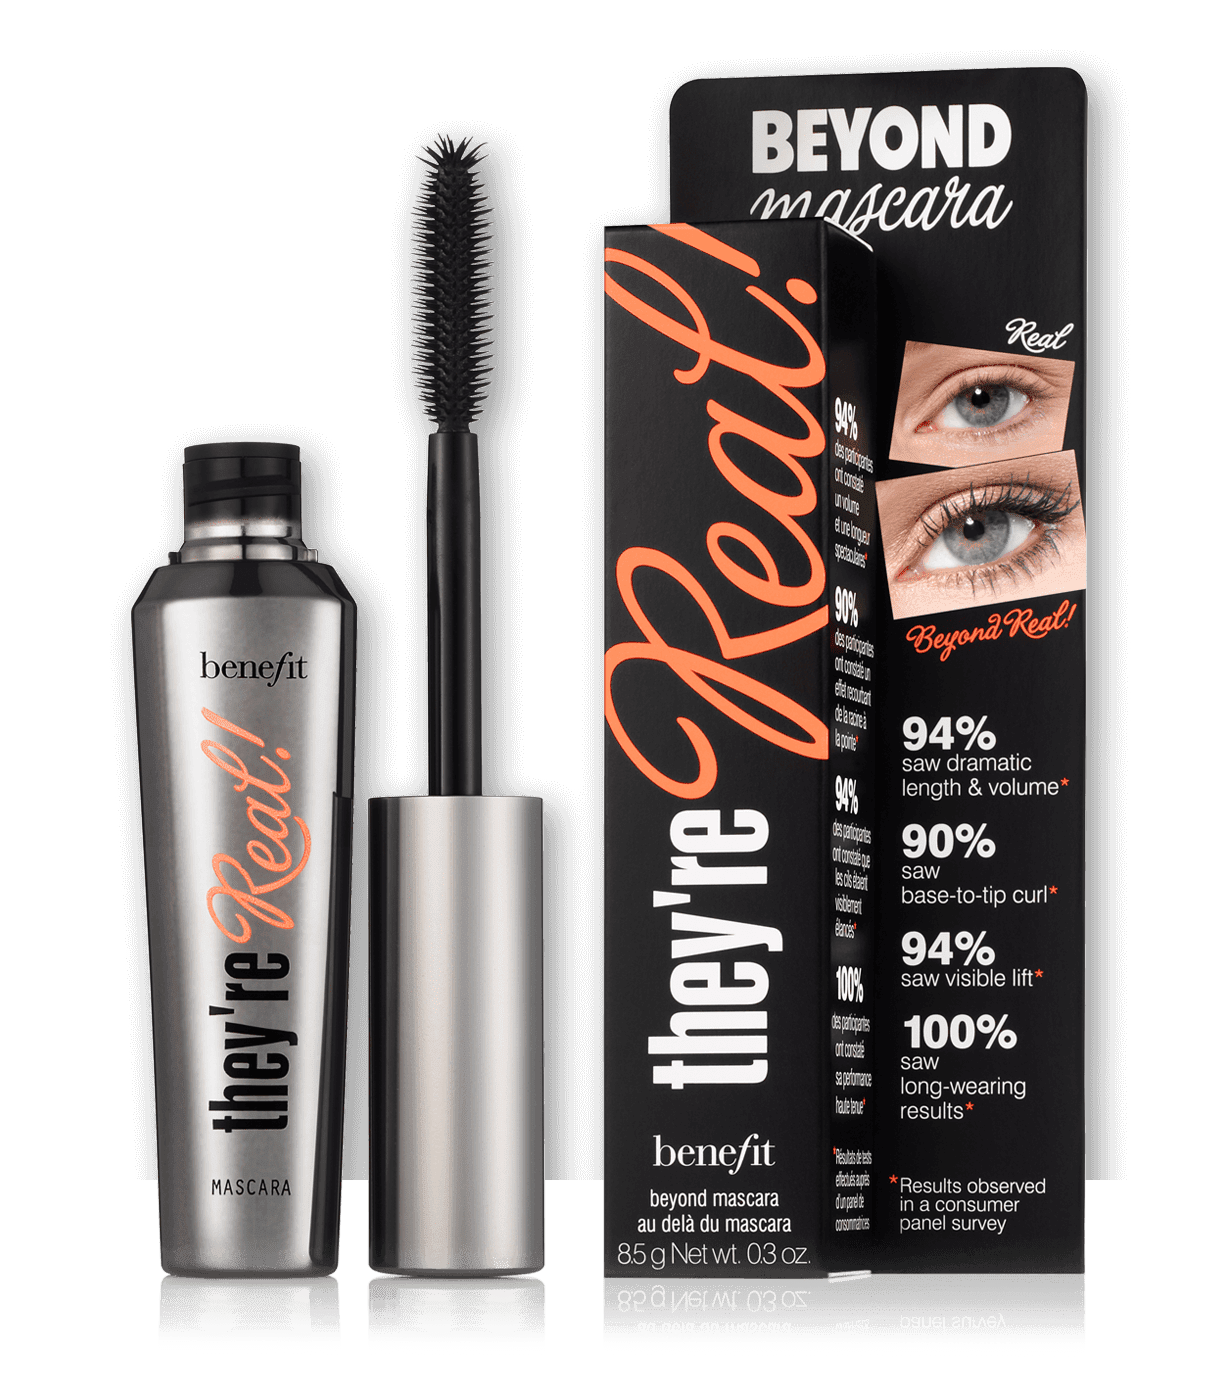 Benefit Eye Mascara image